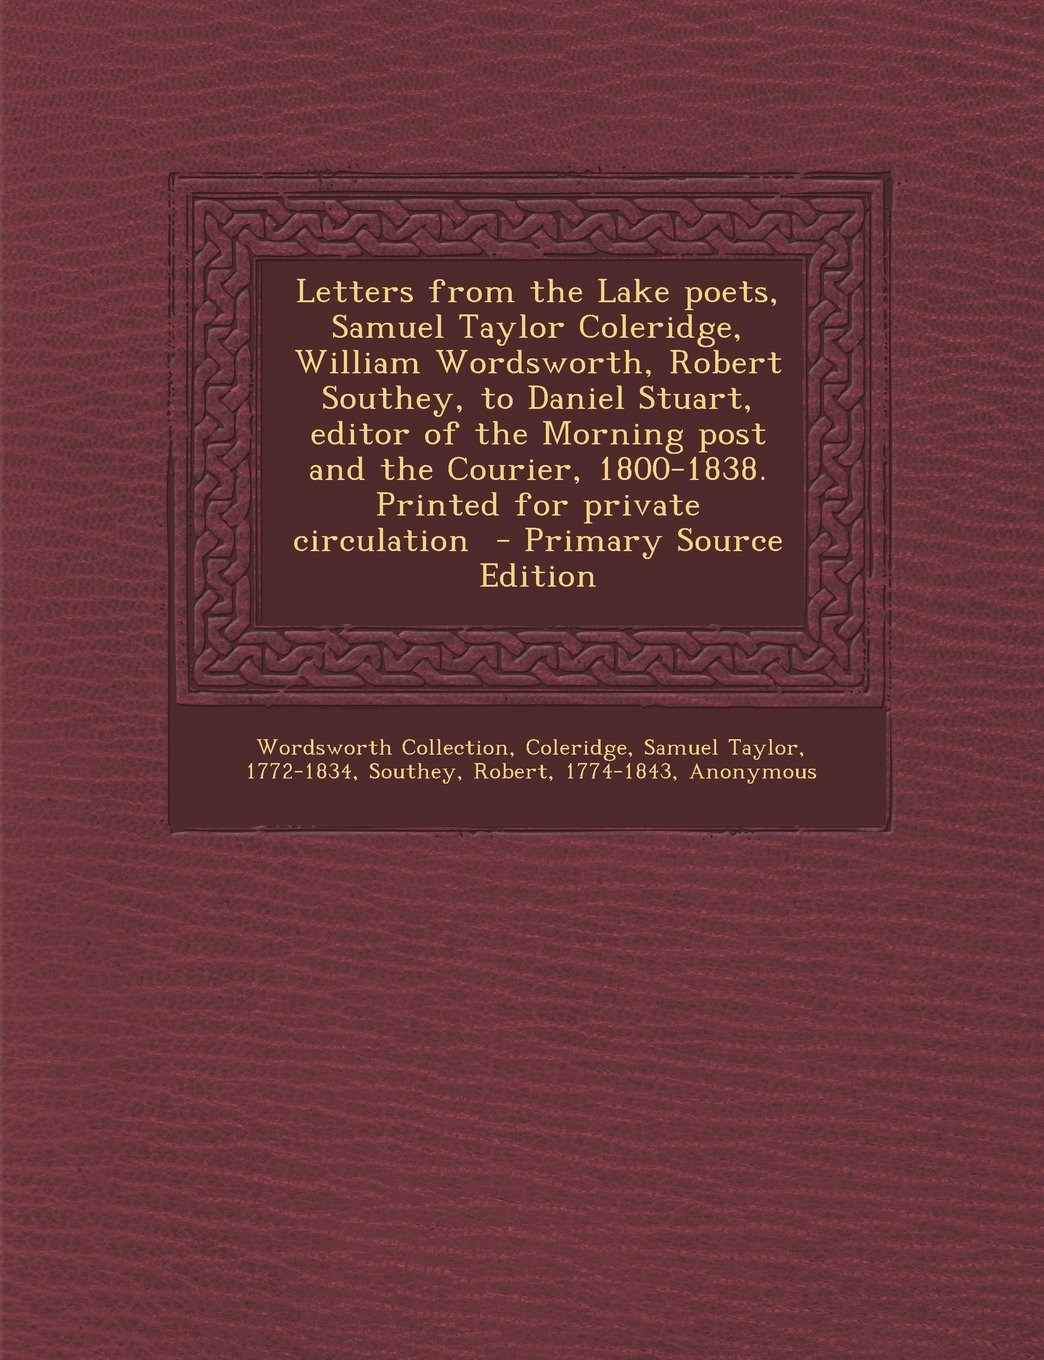 Letters from the Lake Poets, Samuel Taylor Coleridge, William Wordsworth, Robert Southey, to Daniel Stuart, Editor of the Morning Post and the Courier PDF